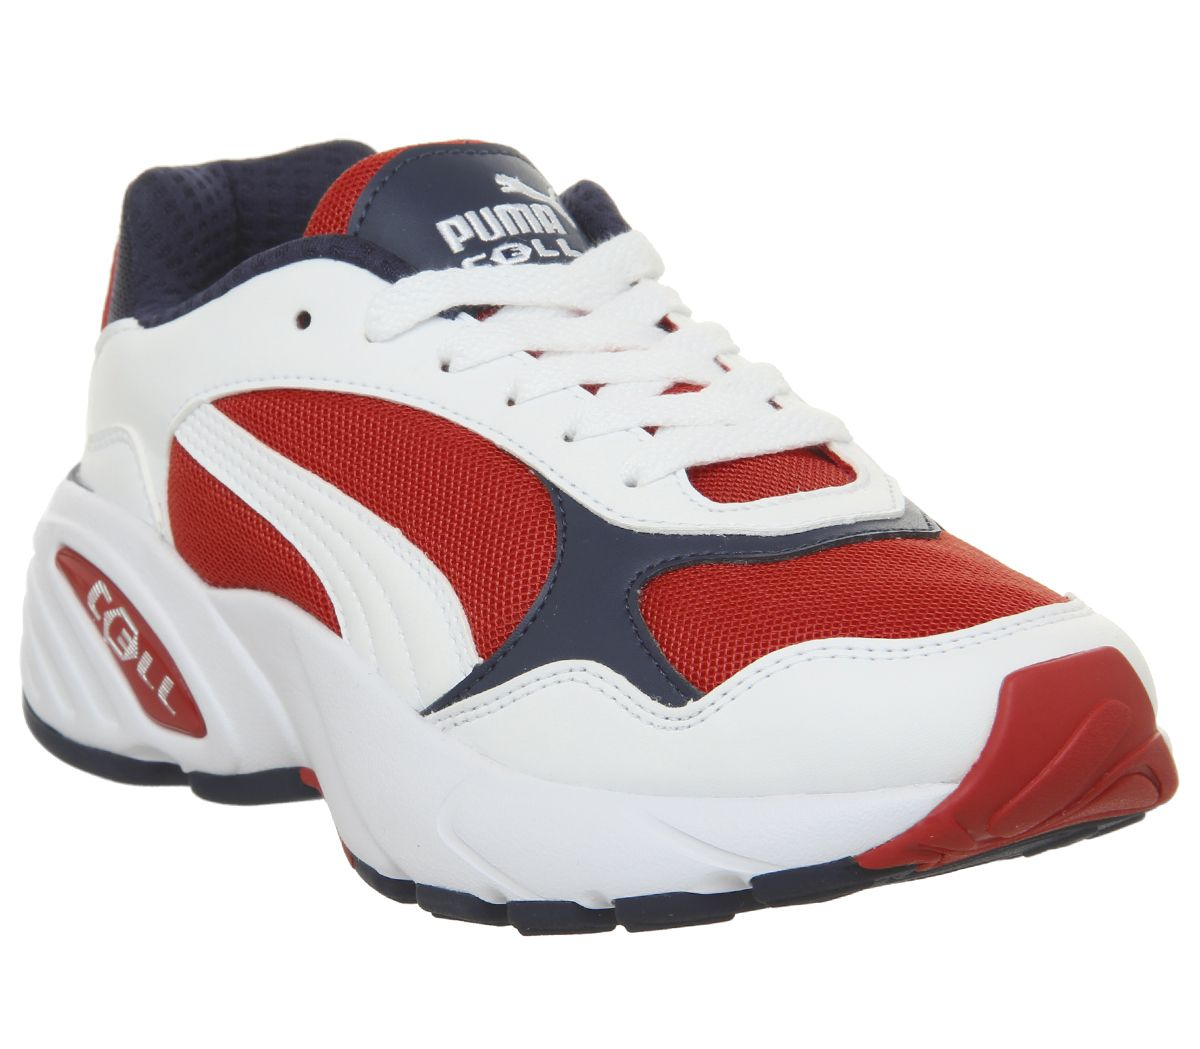 23818bd9df Puma Cell Viper Trainers Puma White High Risk Red - Hers trainers